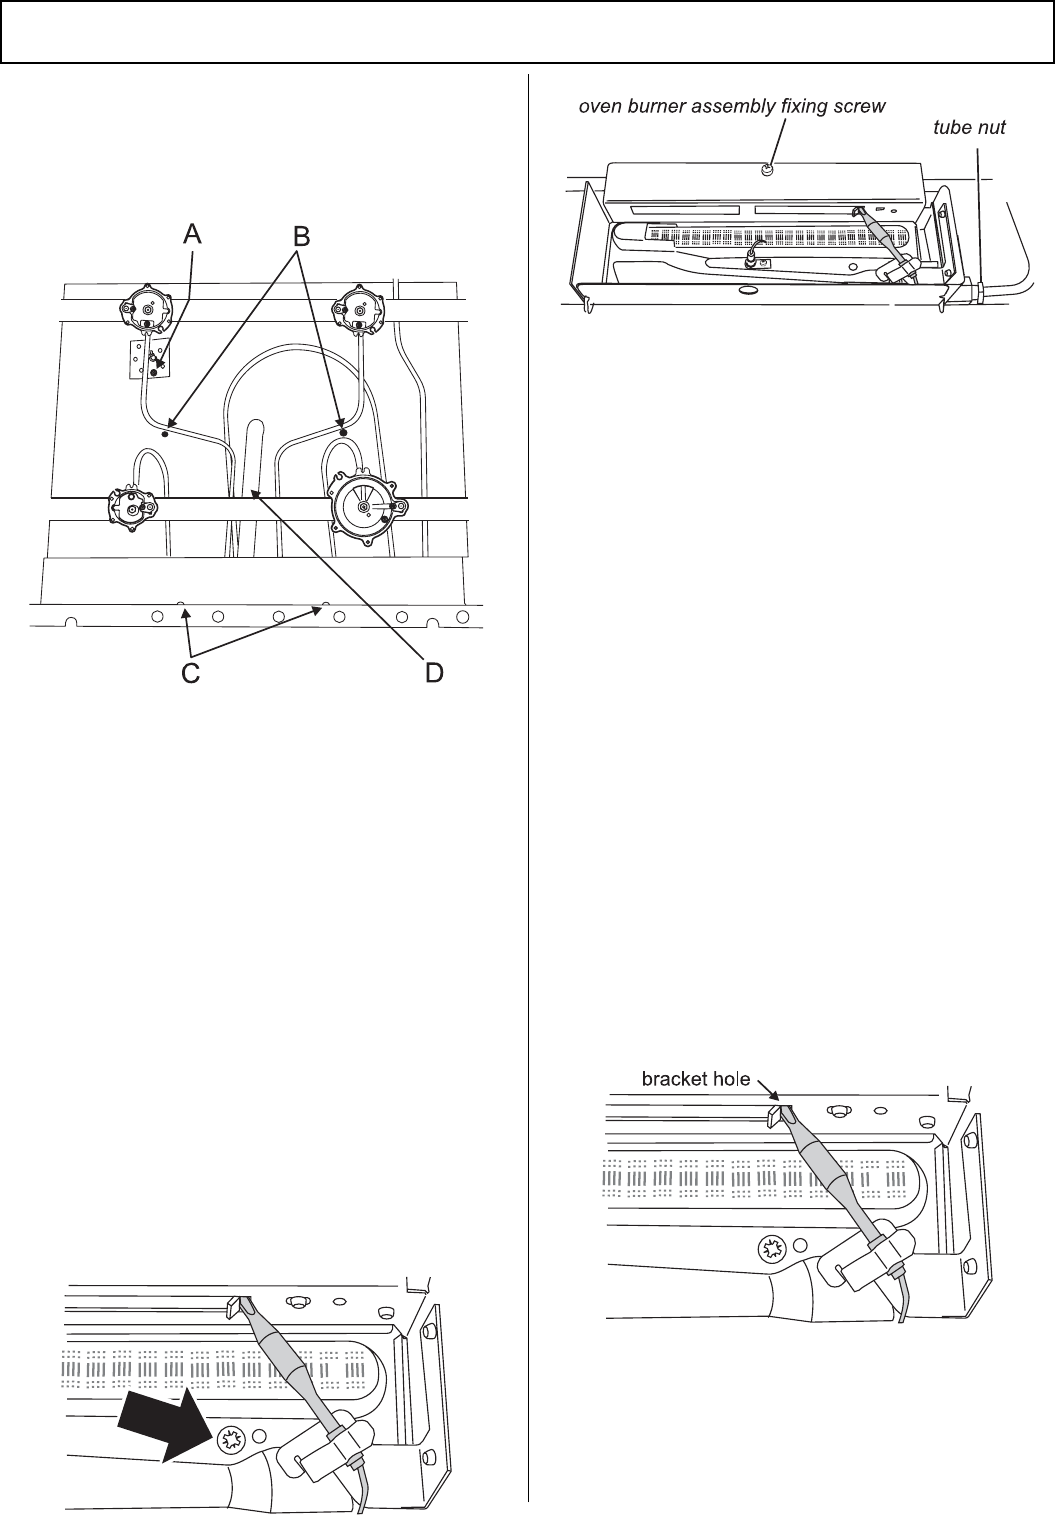 c391f068 6c12 4ff4 bd42 c1b0ffb853f5 bg21 page 33 of rangemaster range 90 gas user guide manualsonline com rangemaster 110 clock wiring diagram at bayanpartner.co